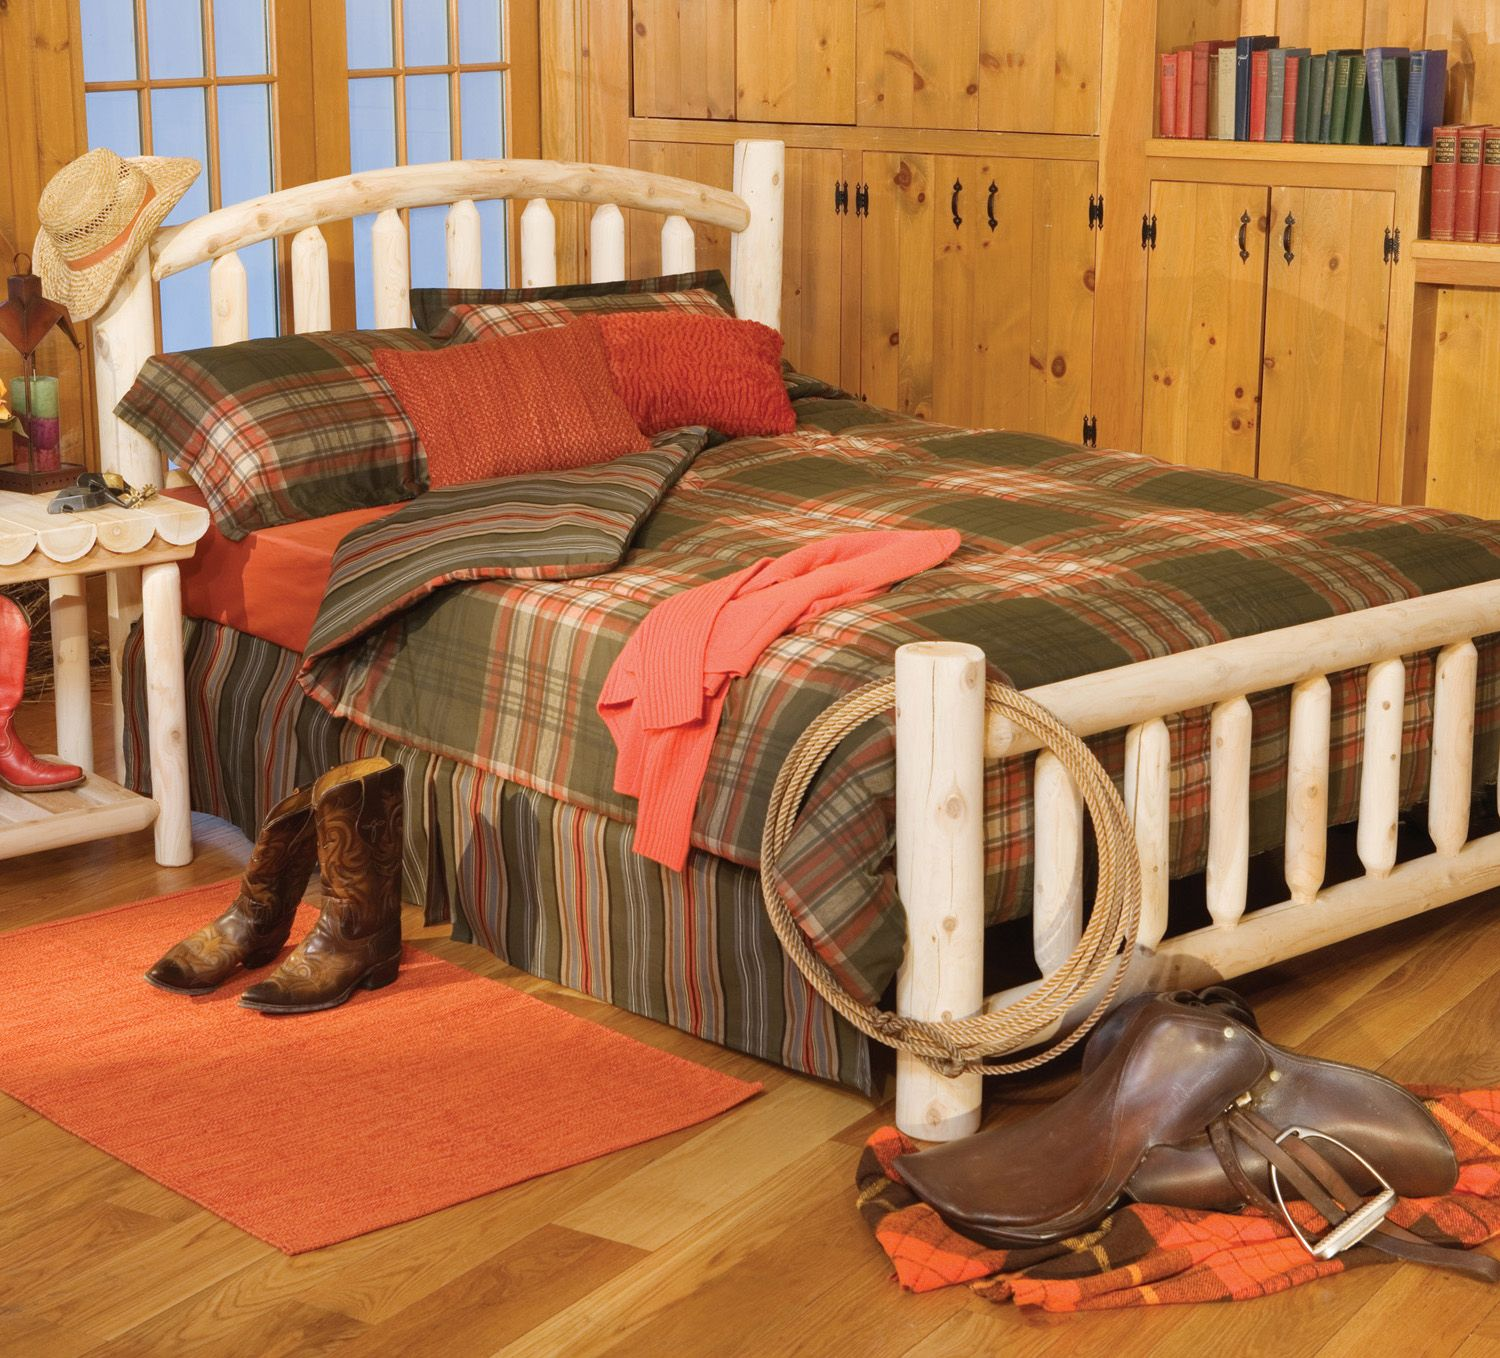 Arched Rustic Bed - Bedroom Log Furniture